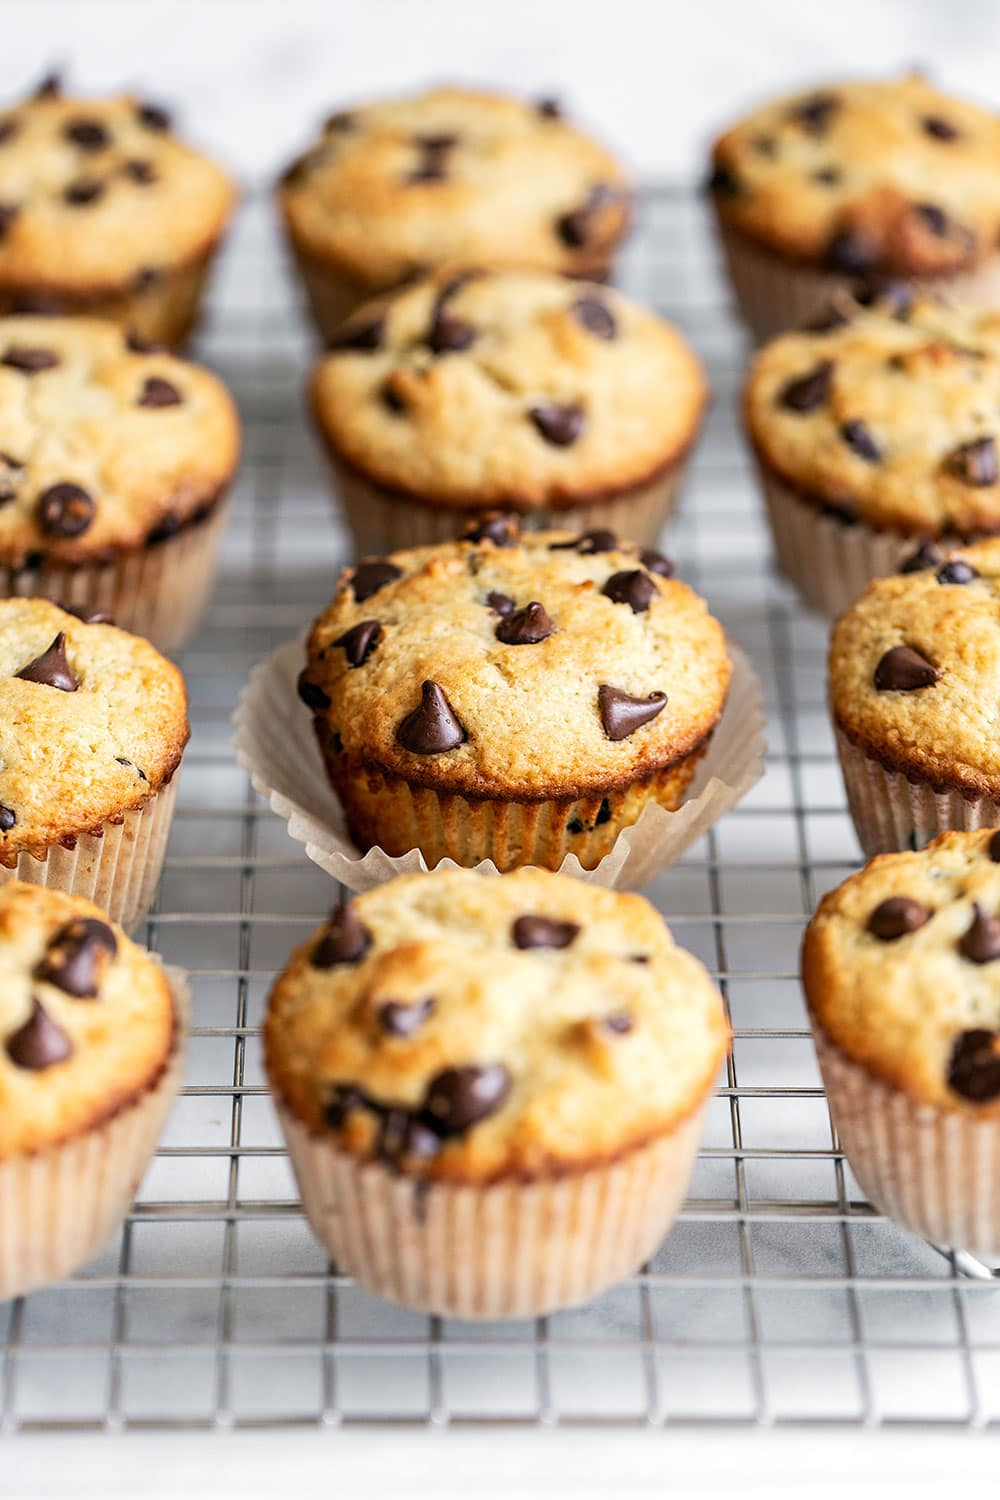 A dozen chocolate chip muffins on a cooling rack